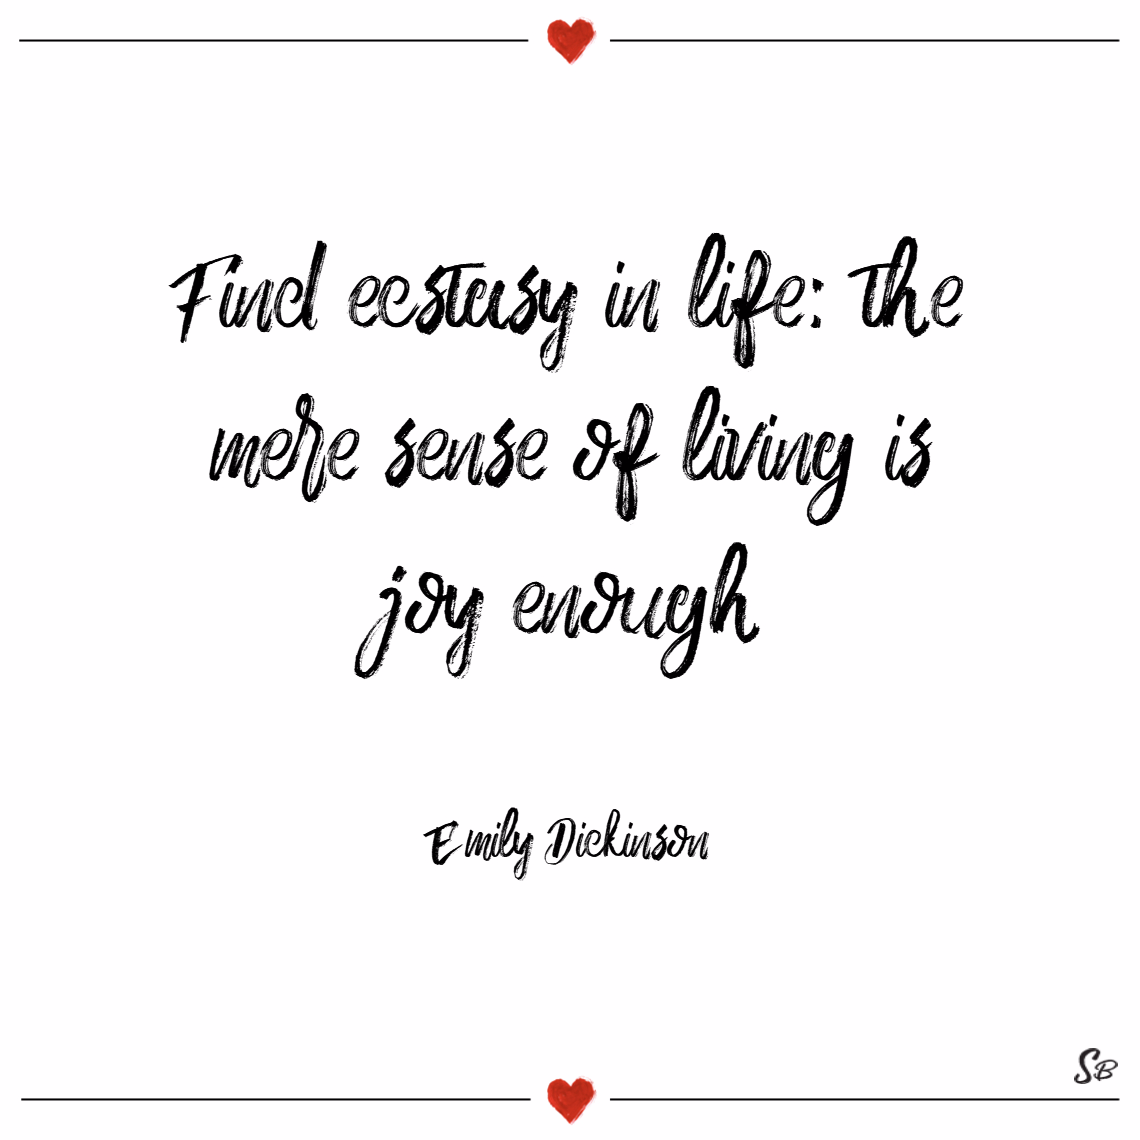 Find ecstasy in life; the mere sense of living is joy enough. – emily dickinson joy quotes